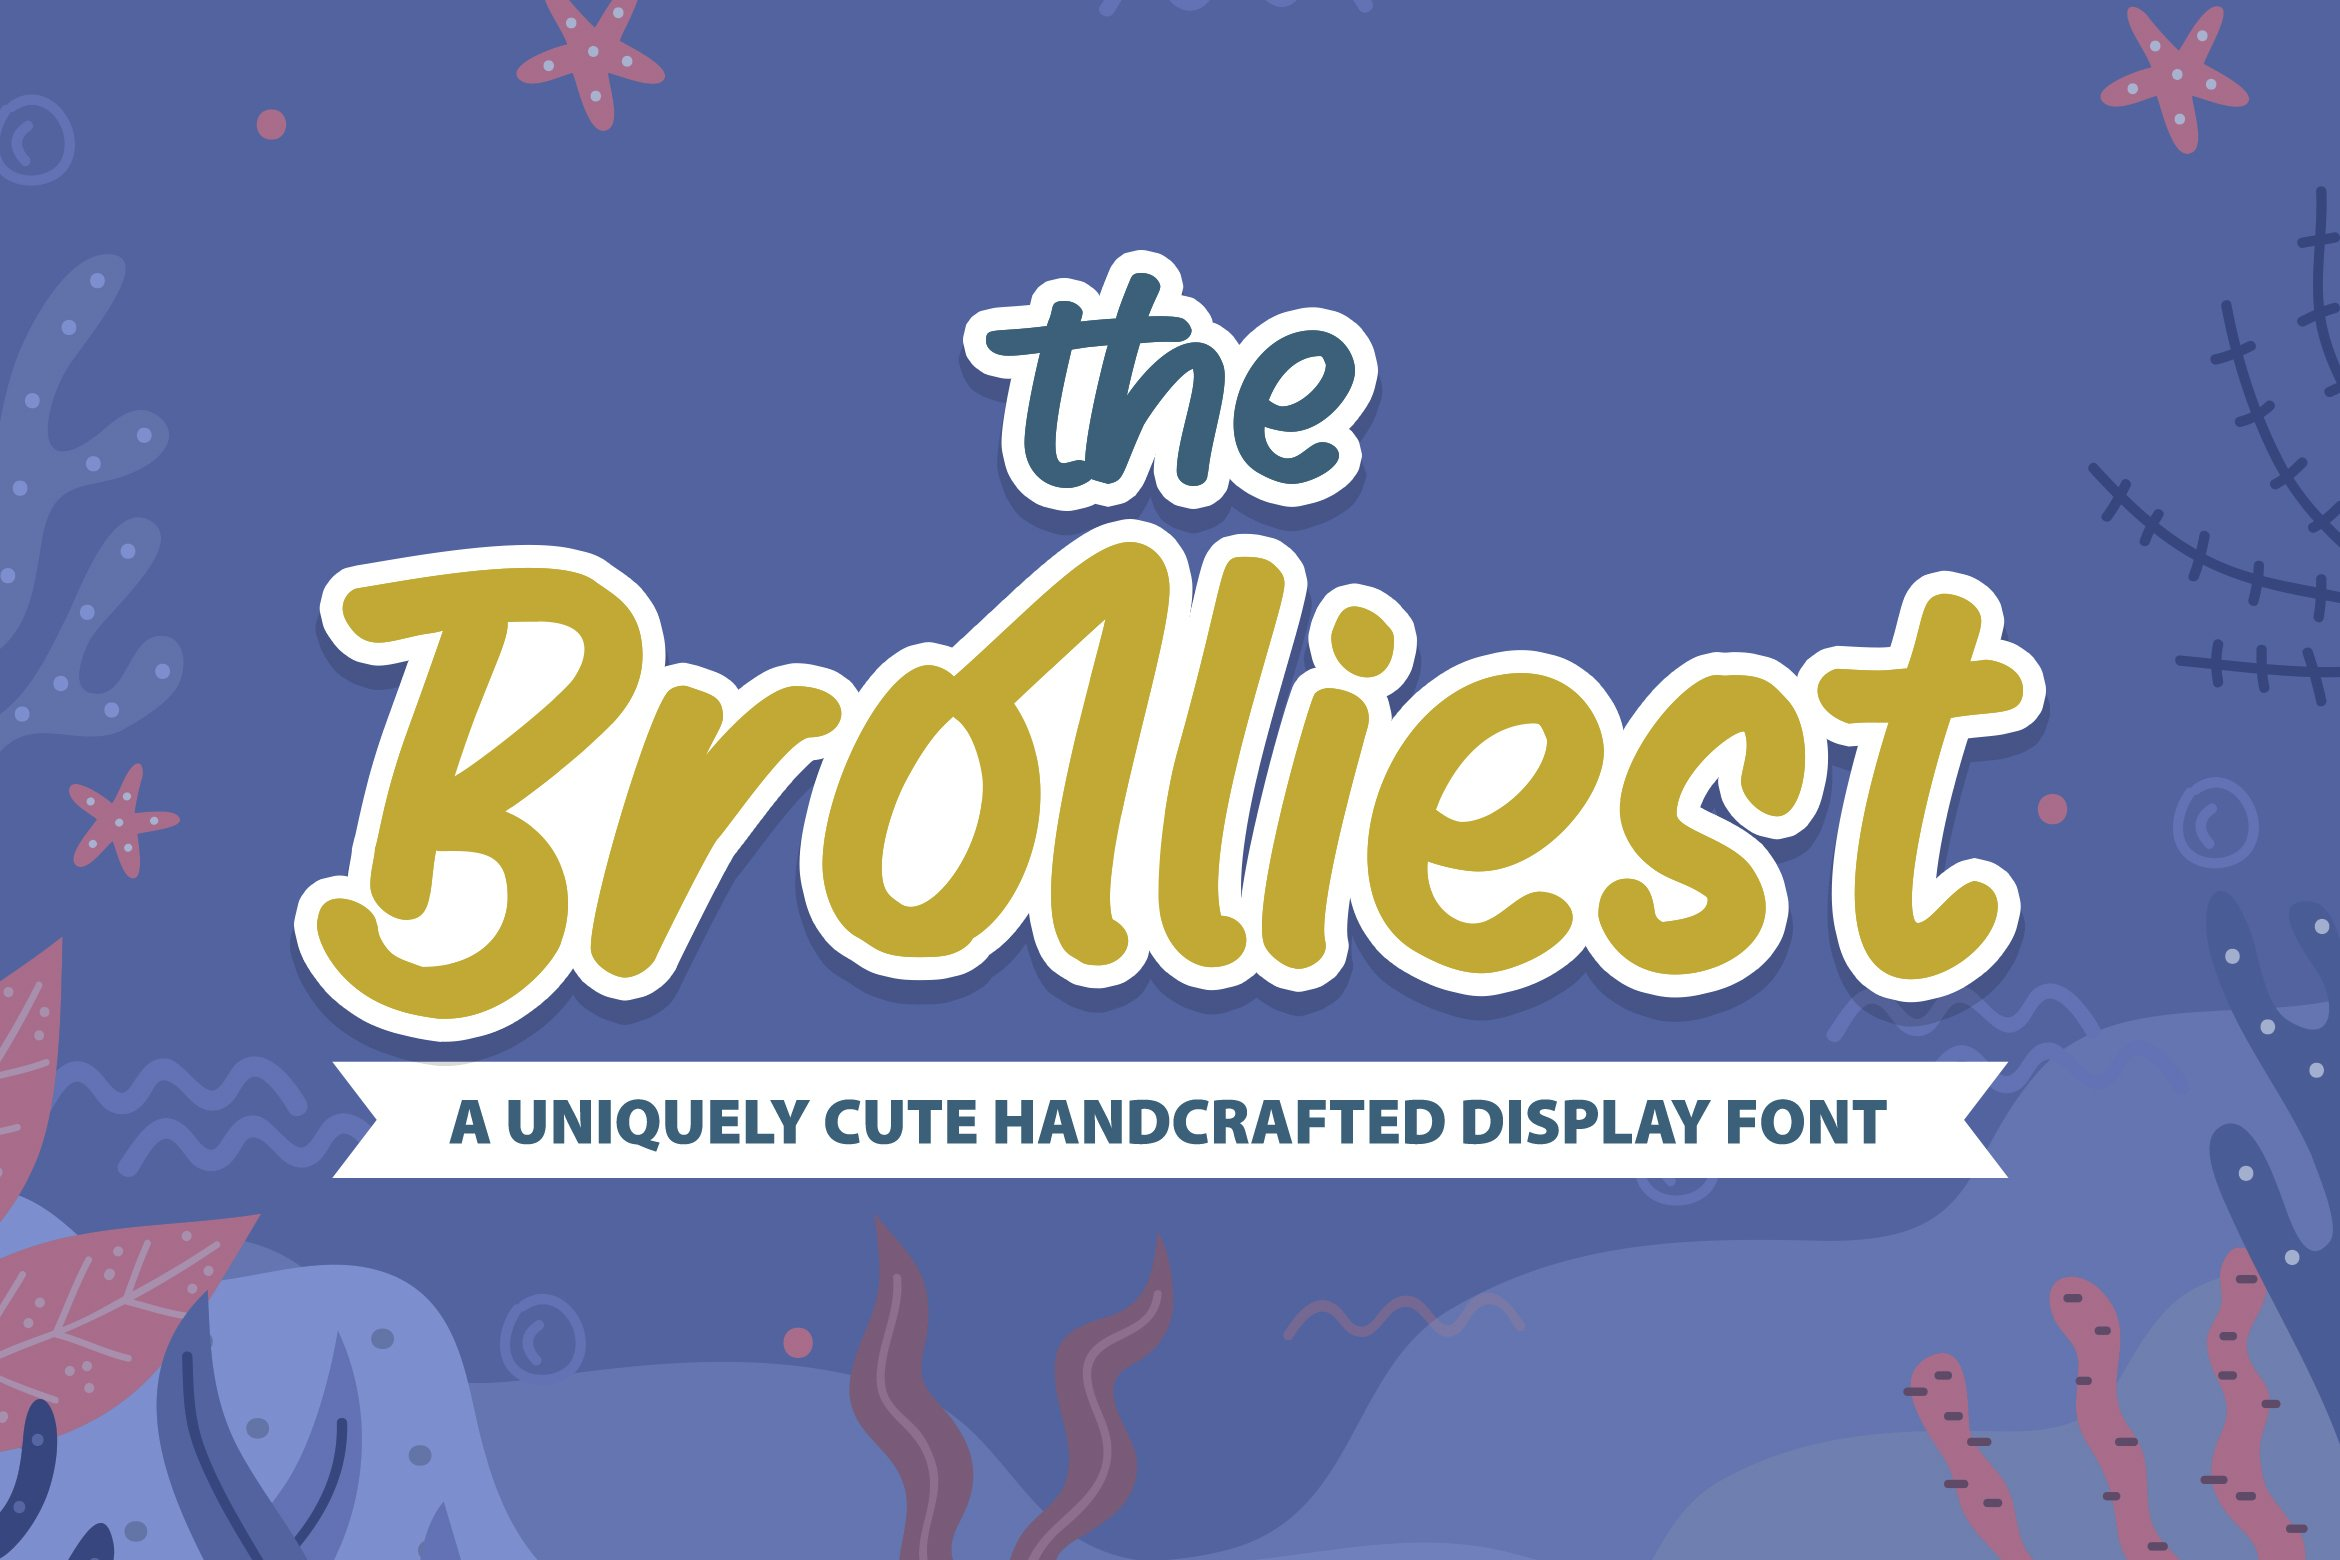 Broliest - A Uniquely Cute Handcrafted Display Font example image 1